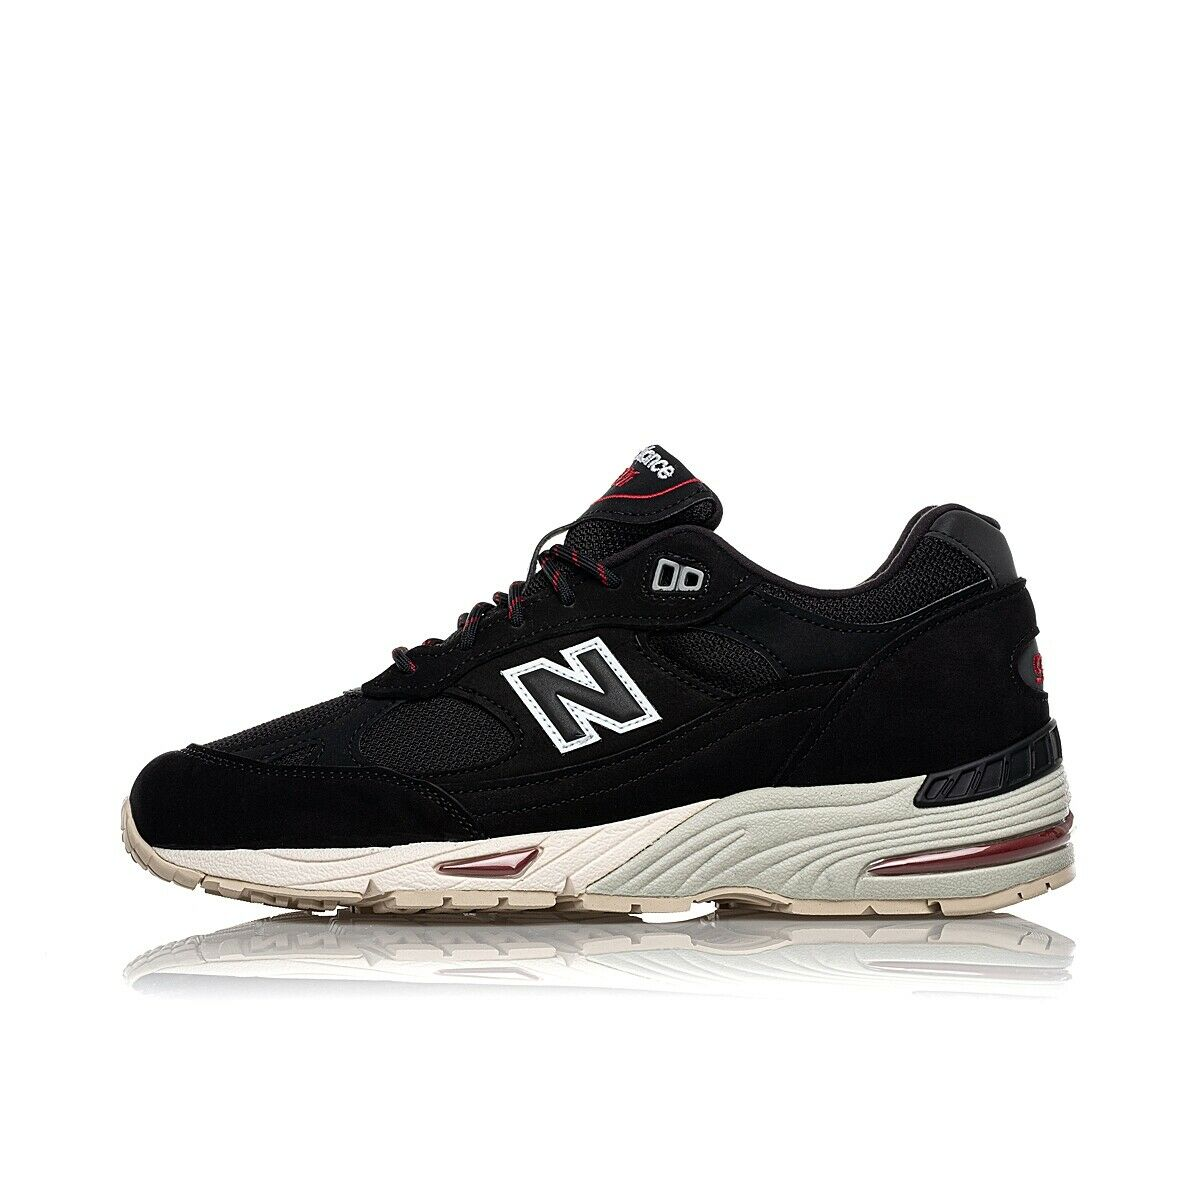 NEW BALANCE 991 MADE IN ENGLAND M991NKR nere 998 574 999 576 1500 990 993